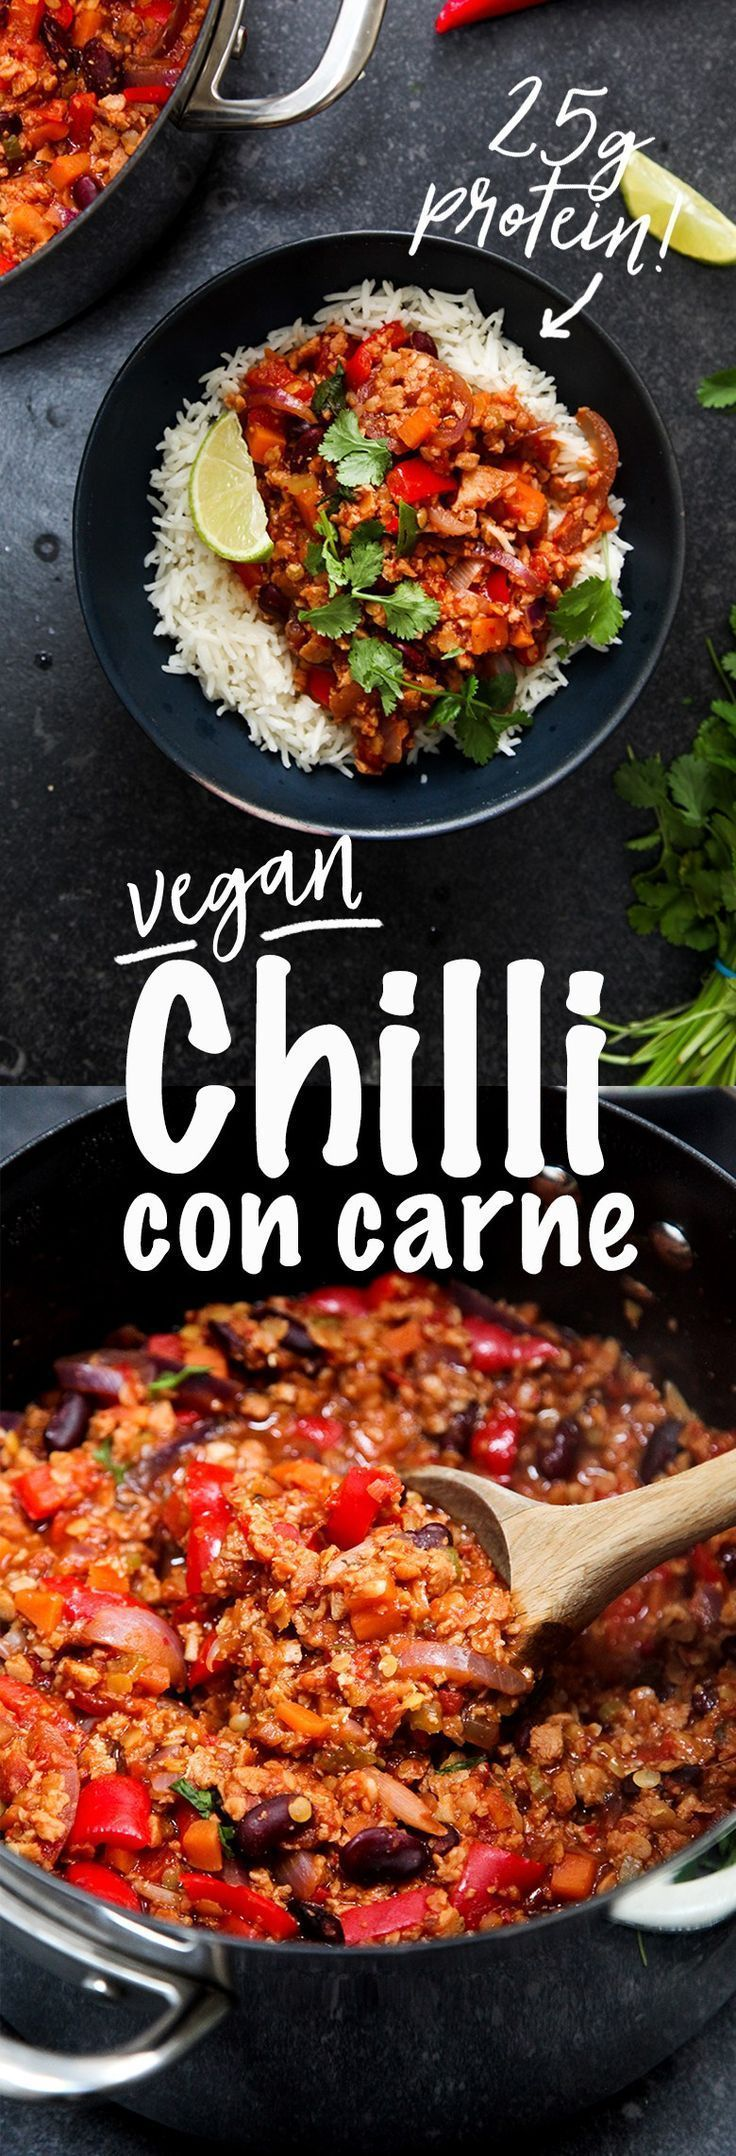 An easy, delicious, and meat-free Chilli Con Carne recipe that's sure to be a hit at your Super Bowl party.